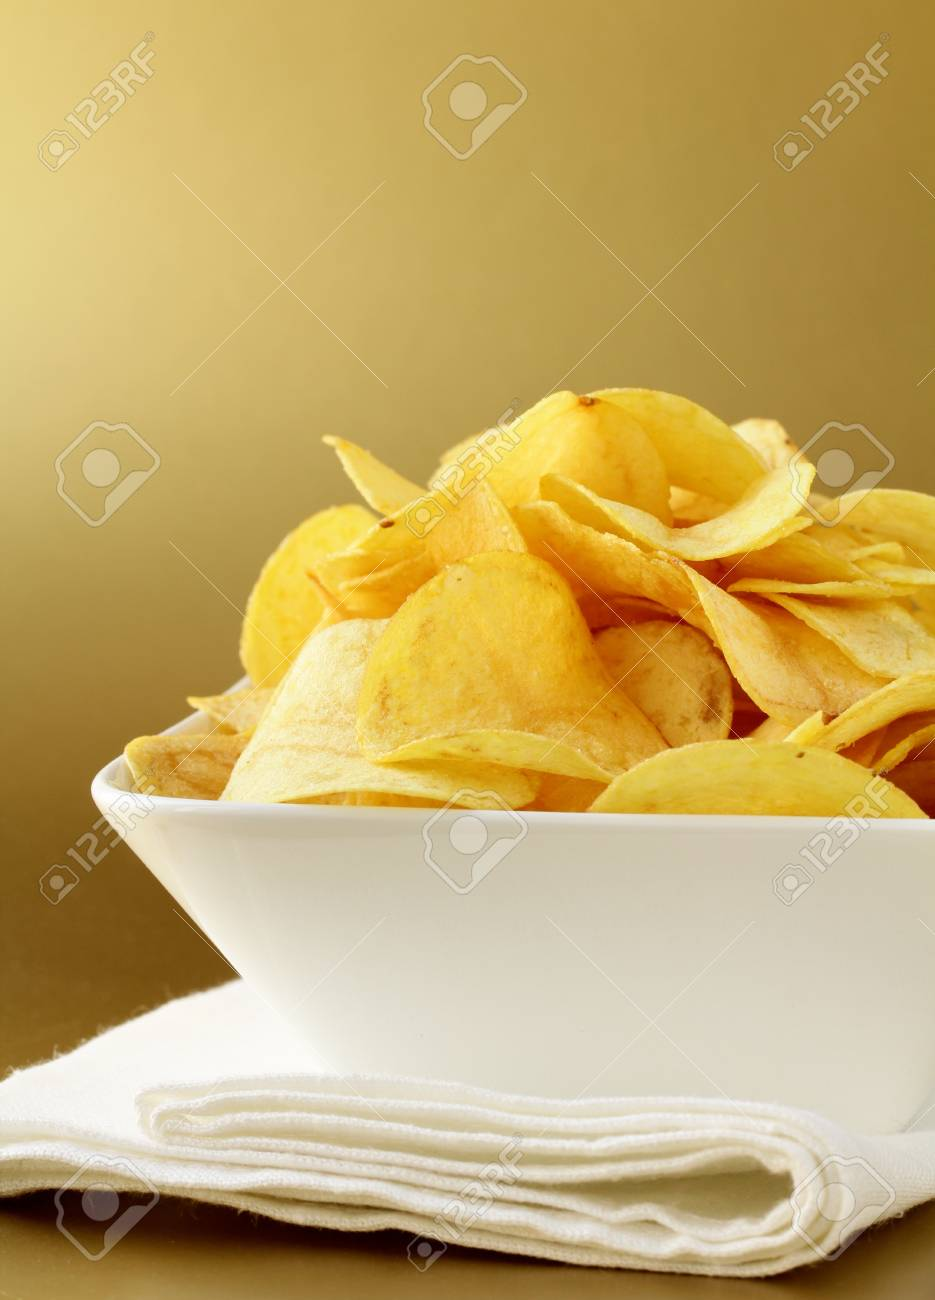 potato chips in a white bowl on a gold background Stock Photo - 12522836